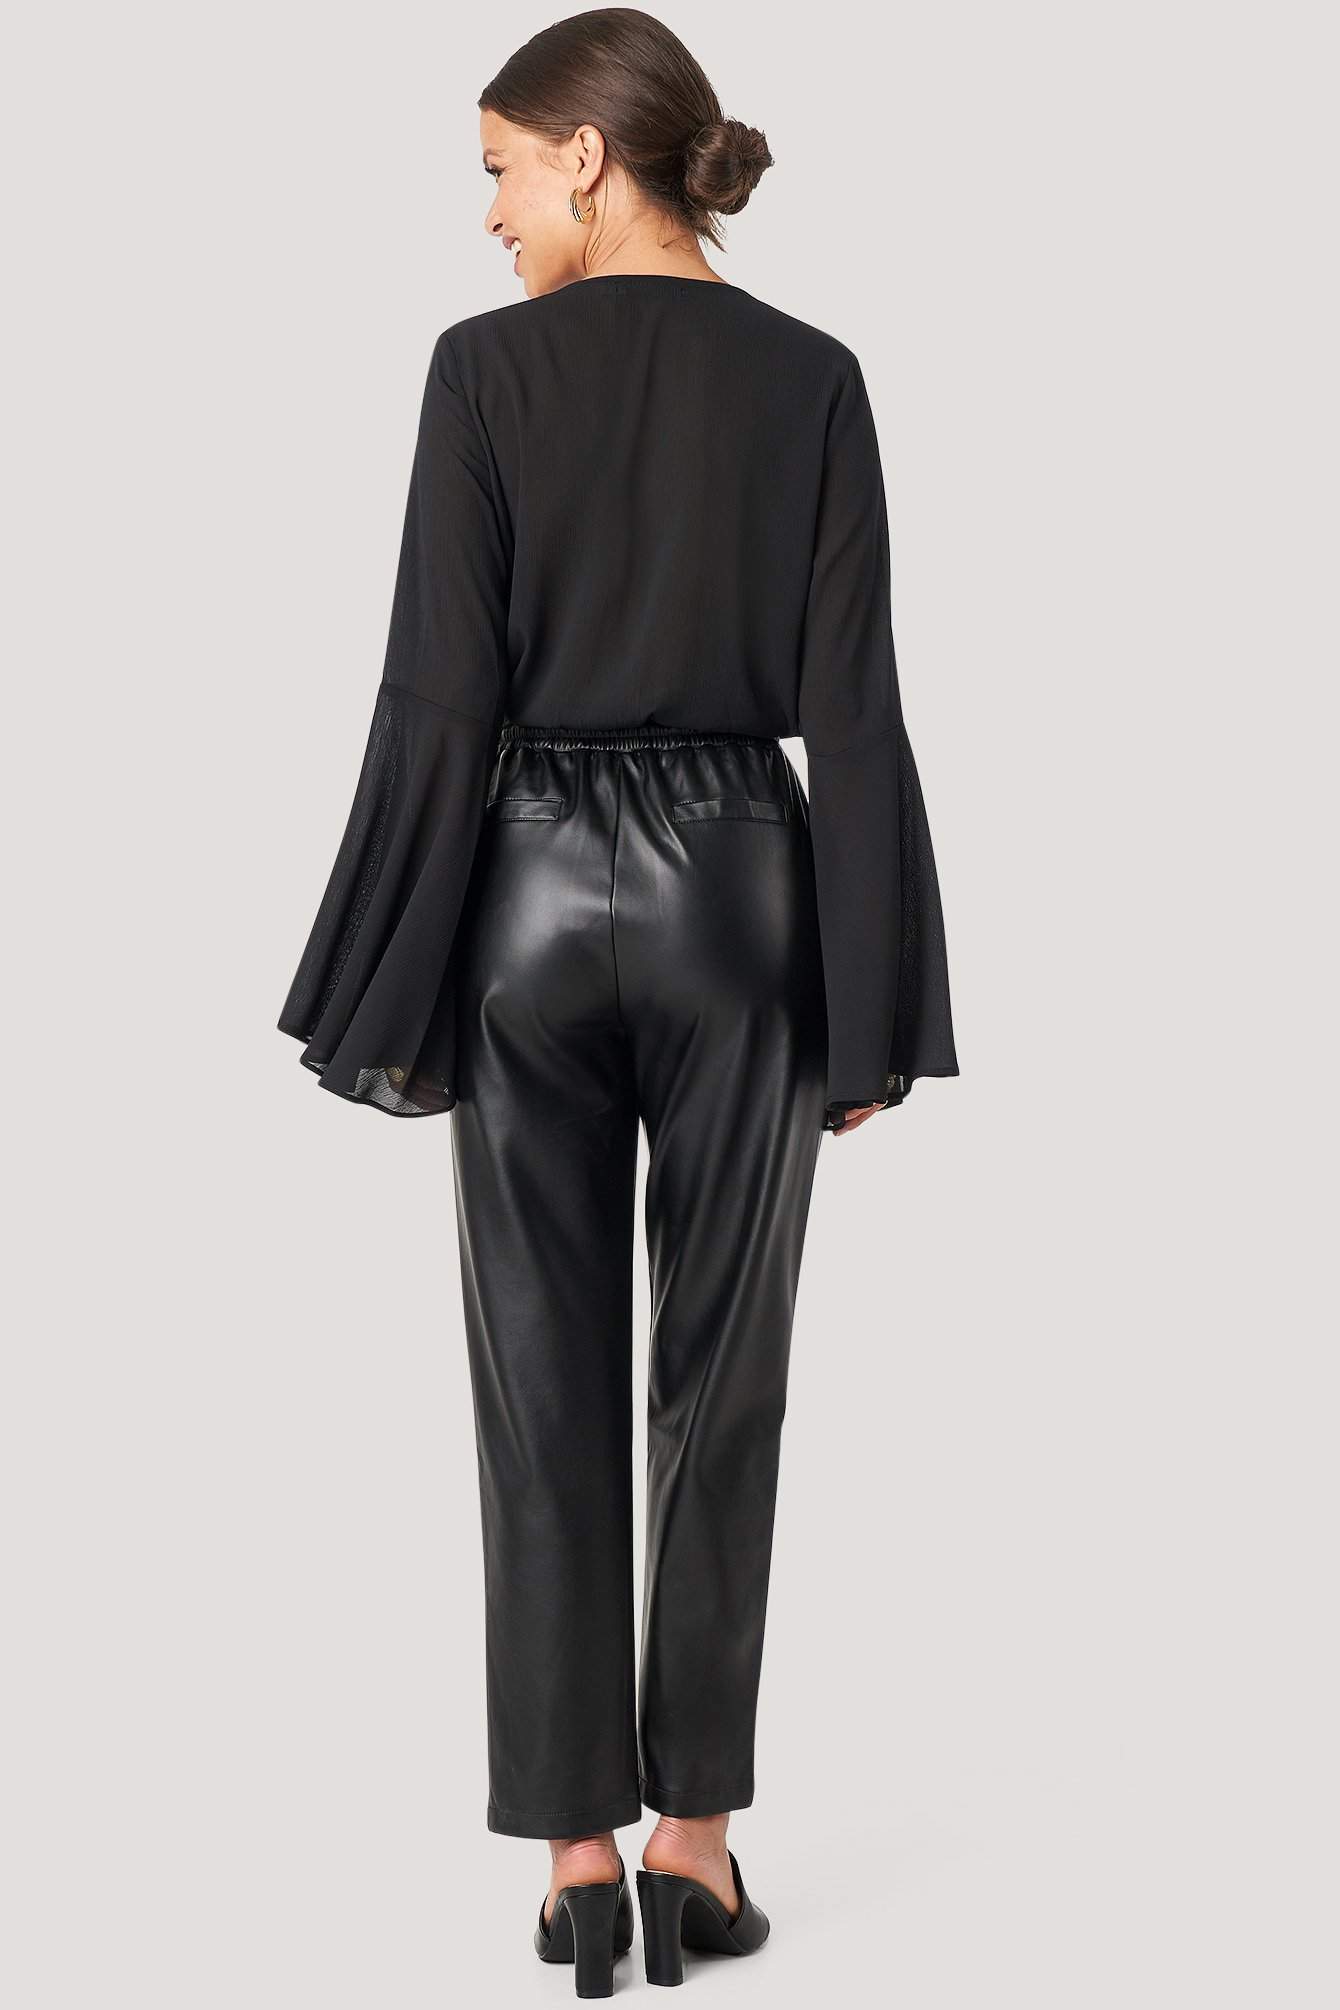 Black Drawstring Pu Pants